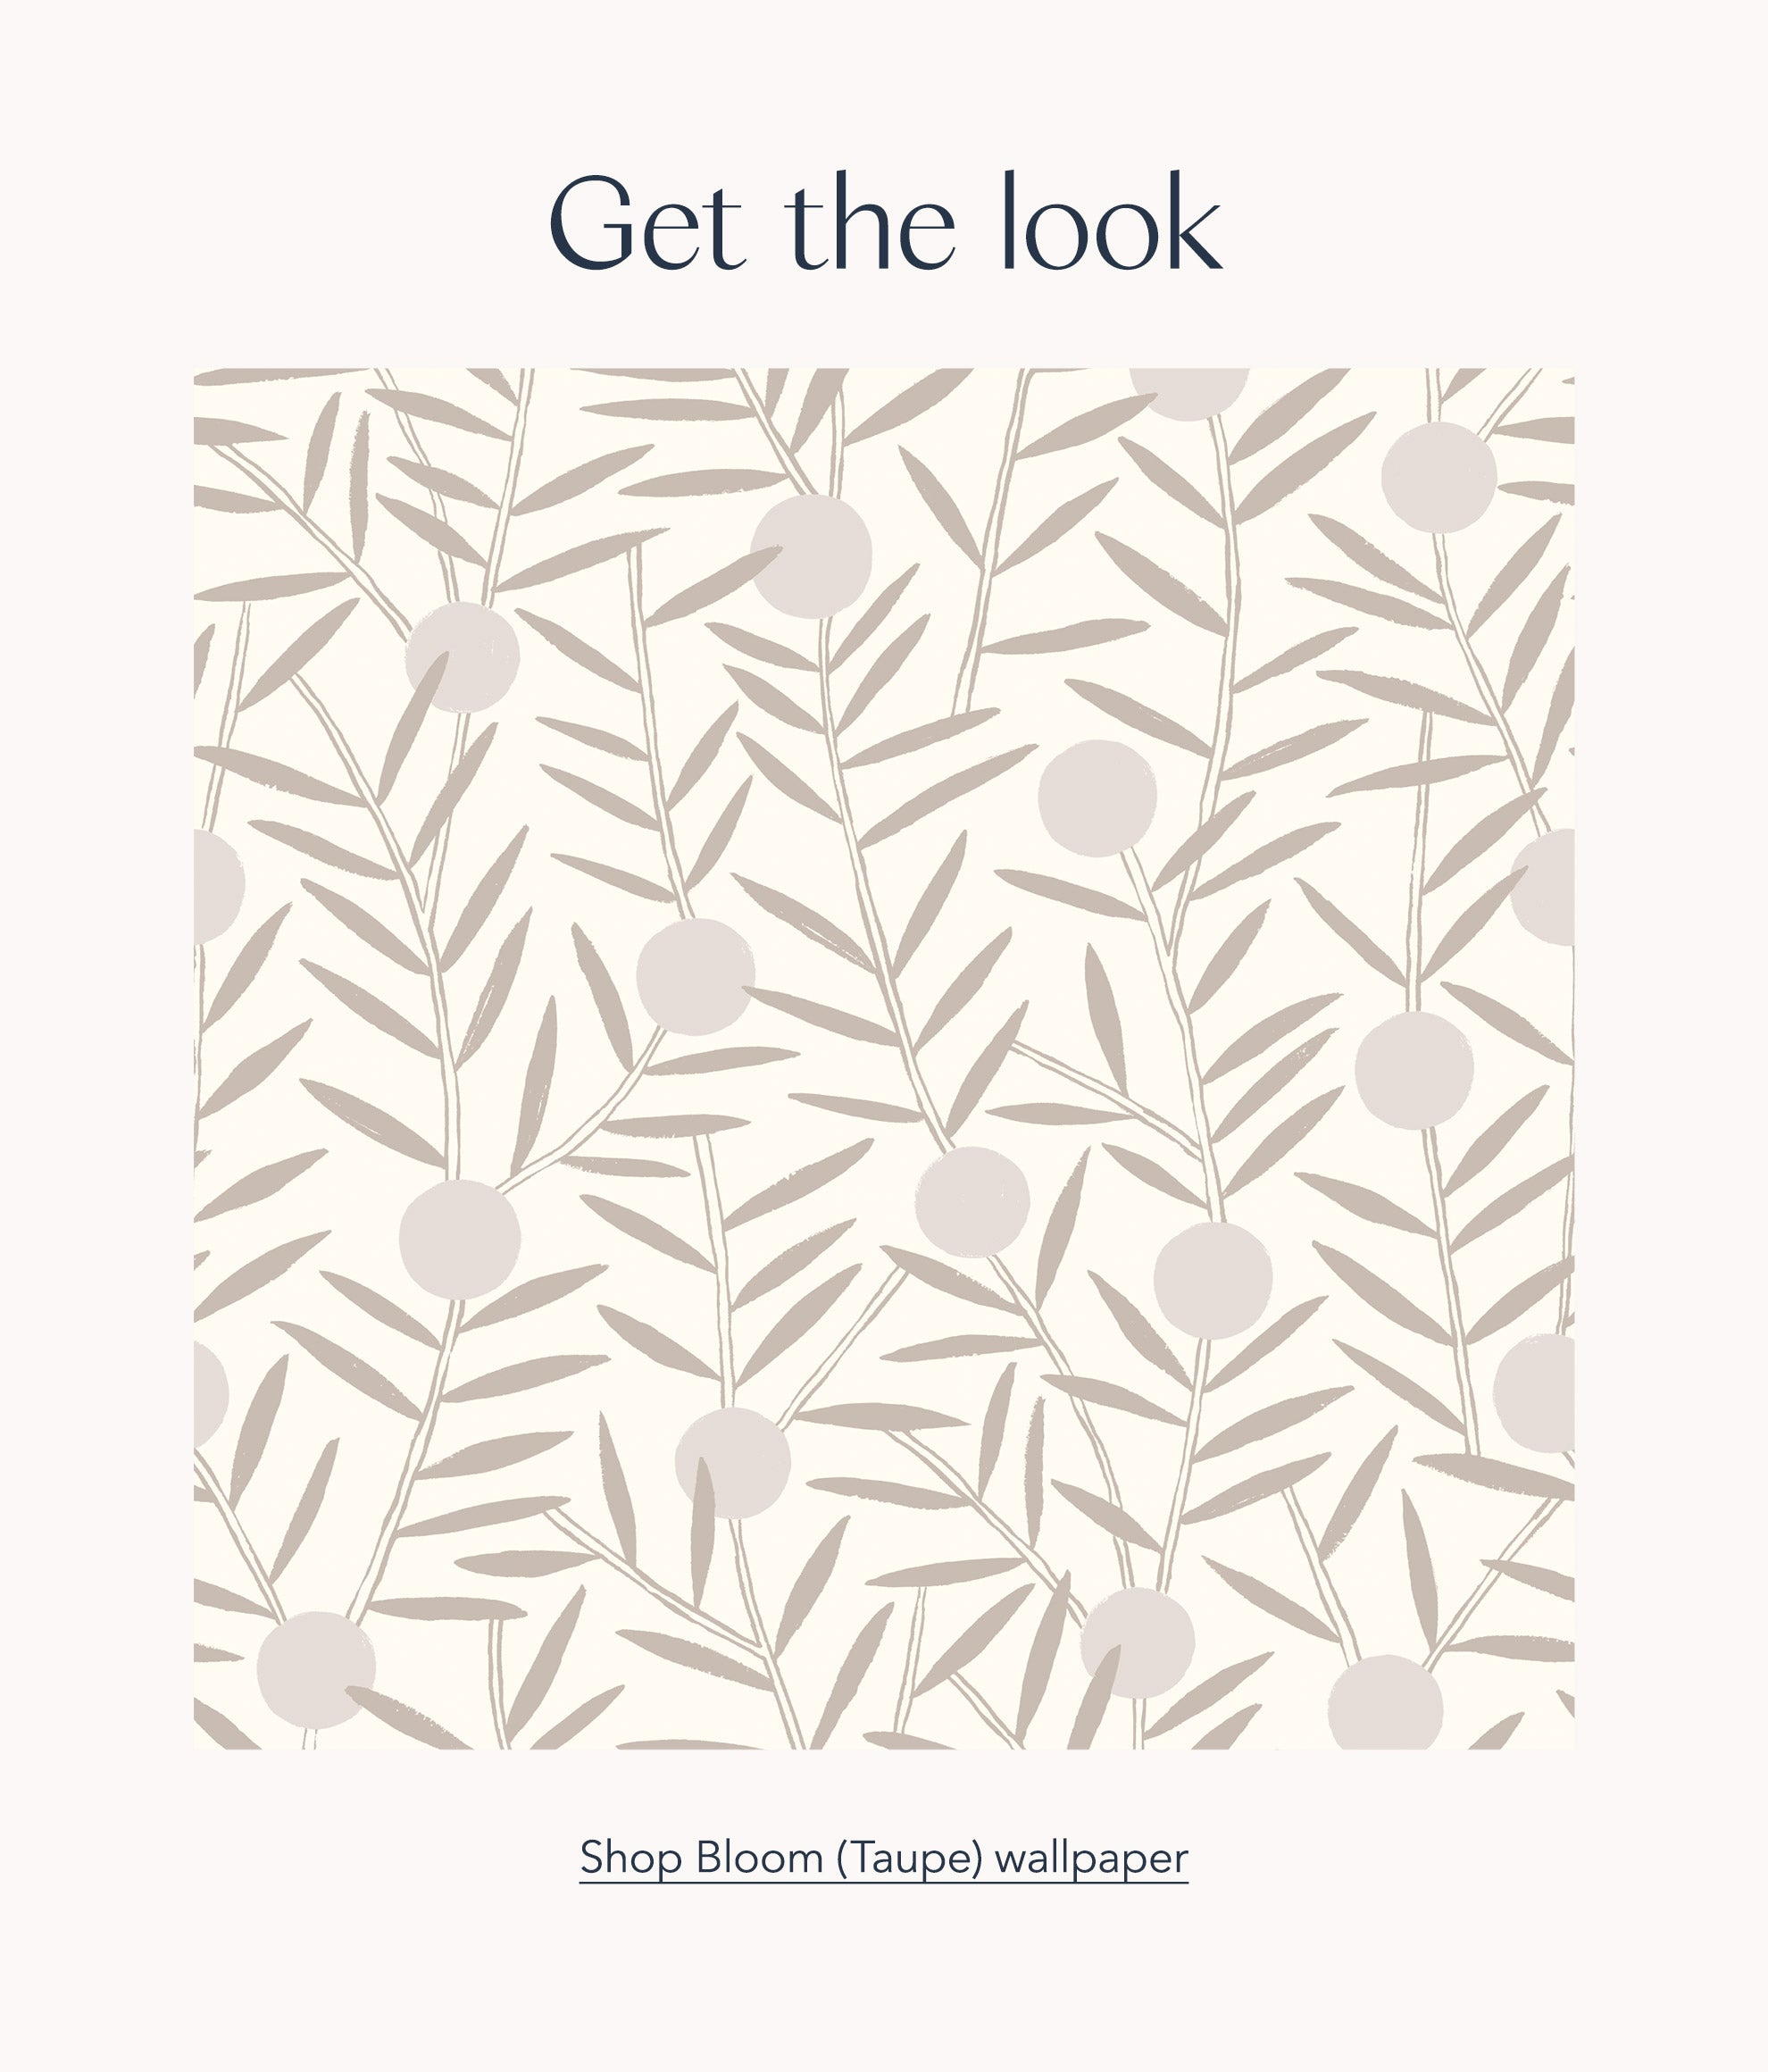 Get the look: Shop Bloom (Taupe) wallpaper